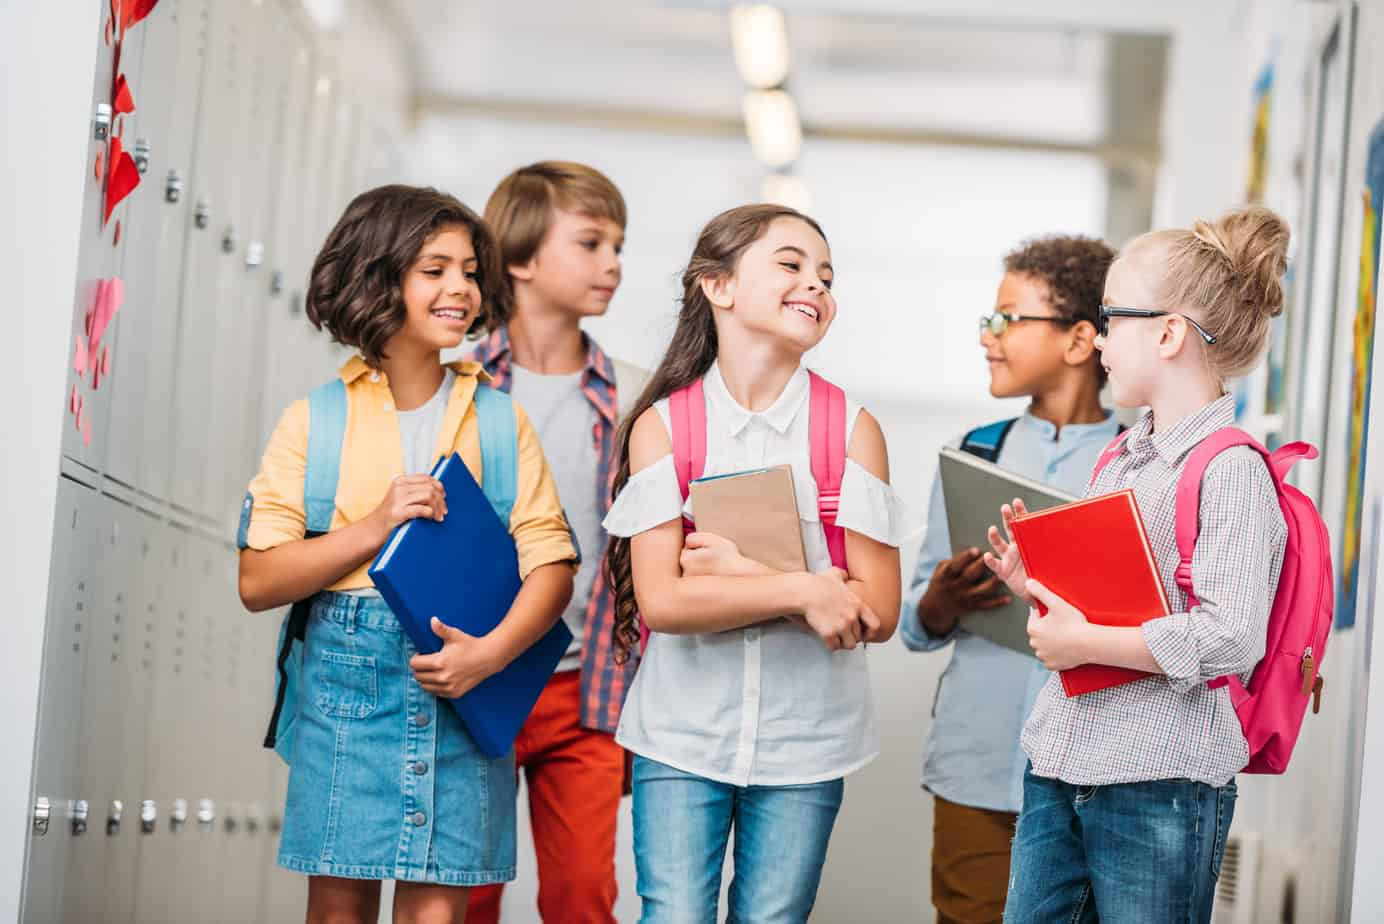 Ease your child's back to school anxiety with these powerful tips. This article is epic, it includes free lunchbox notes, a free first day of school tradition printable and a back to school preparation checklist, along with 6 powerful tactics to calm school jitters and back to school nervousness. #backtoschool #backtoschoolanxiety #schoolanxiety